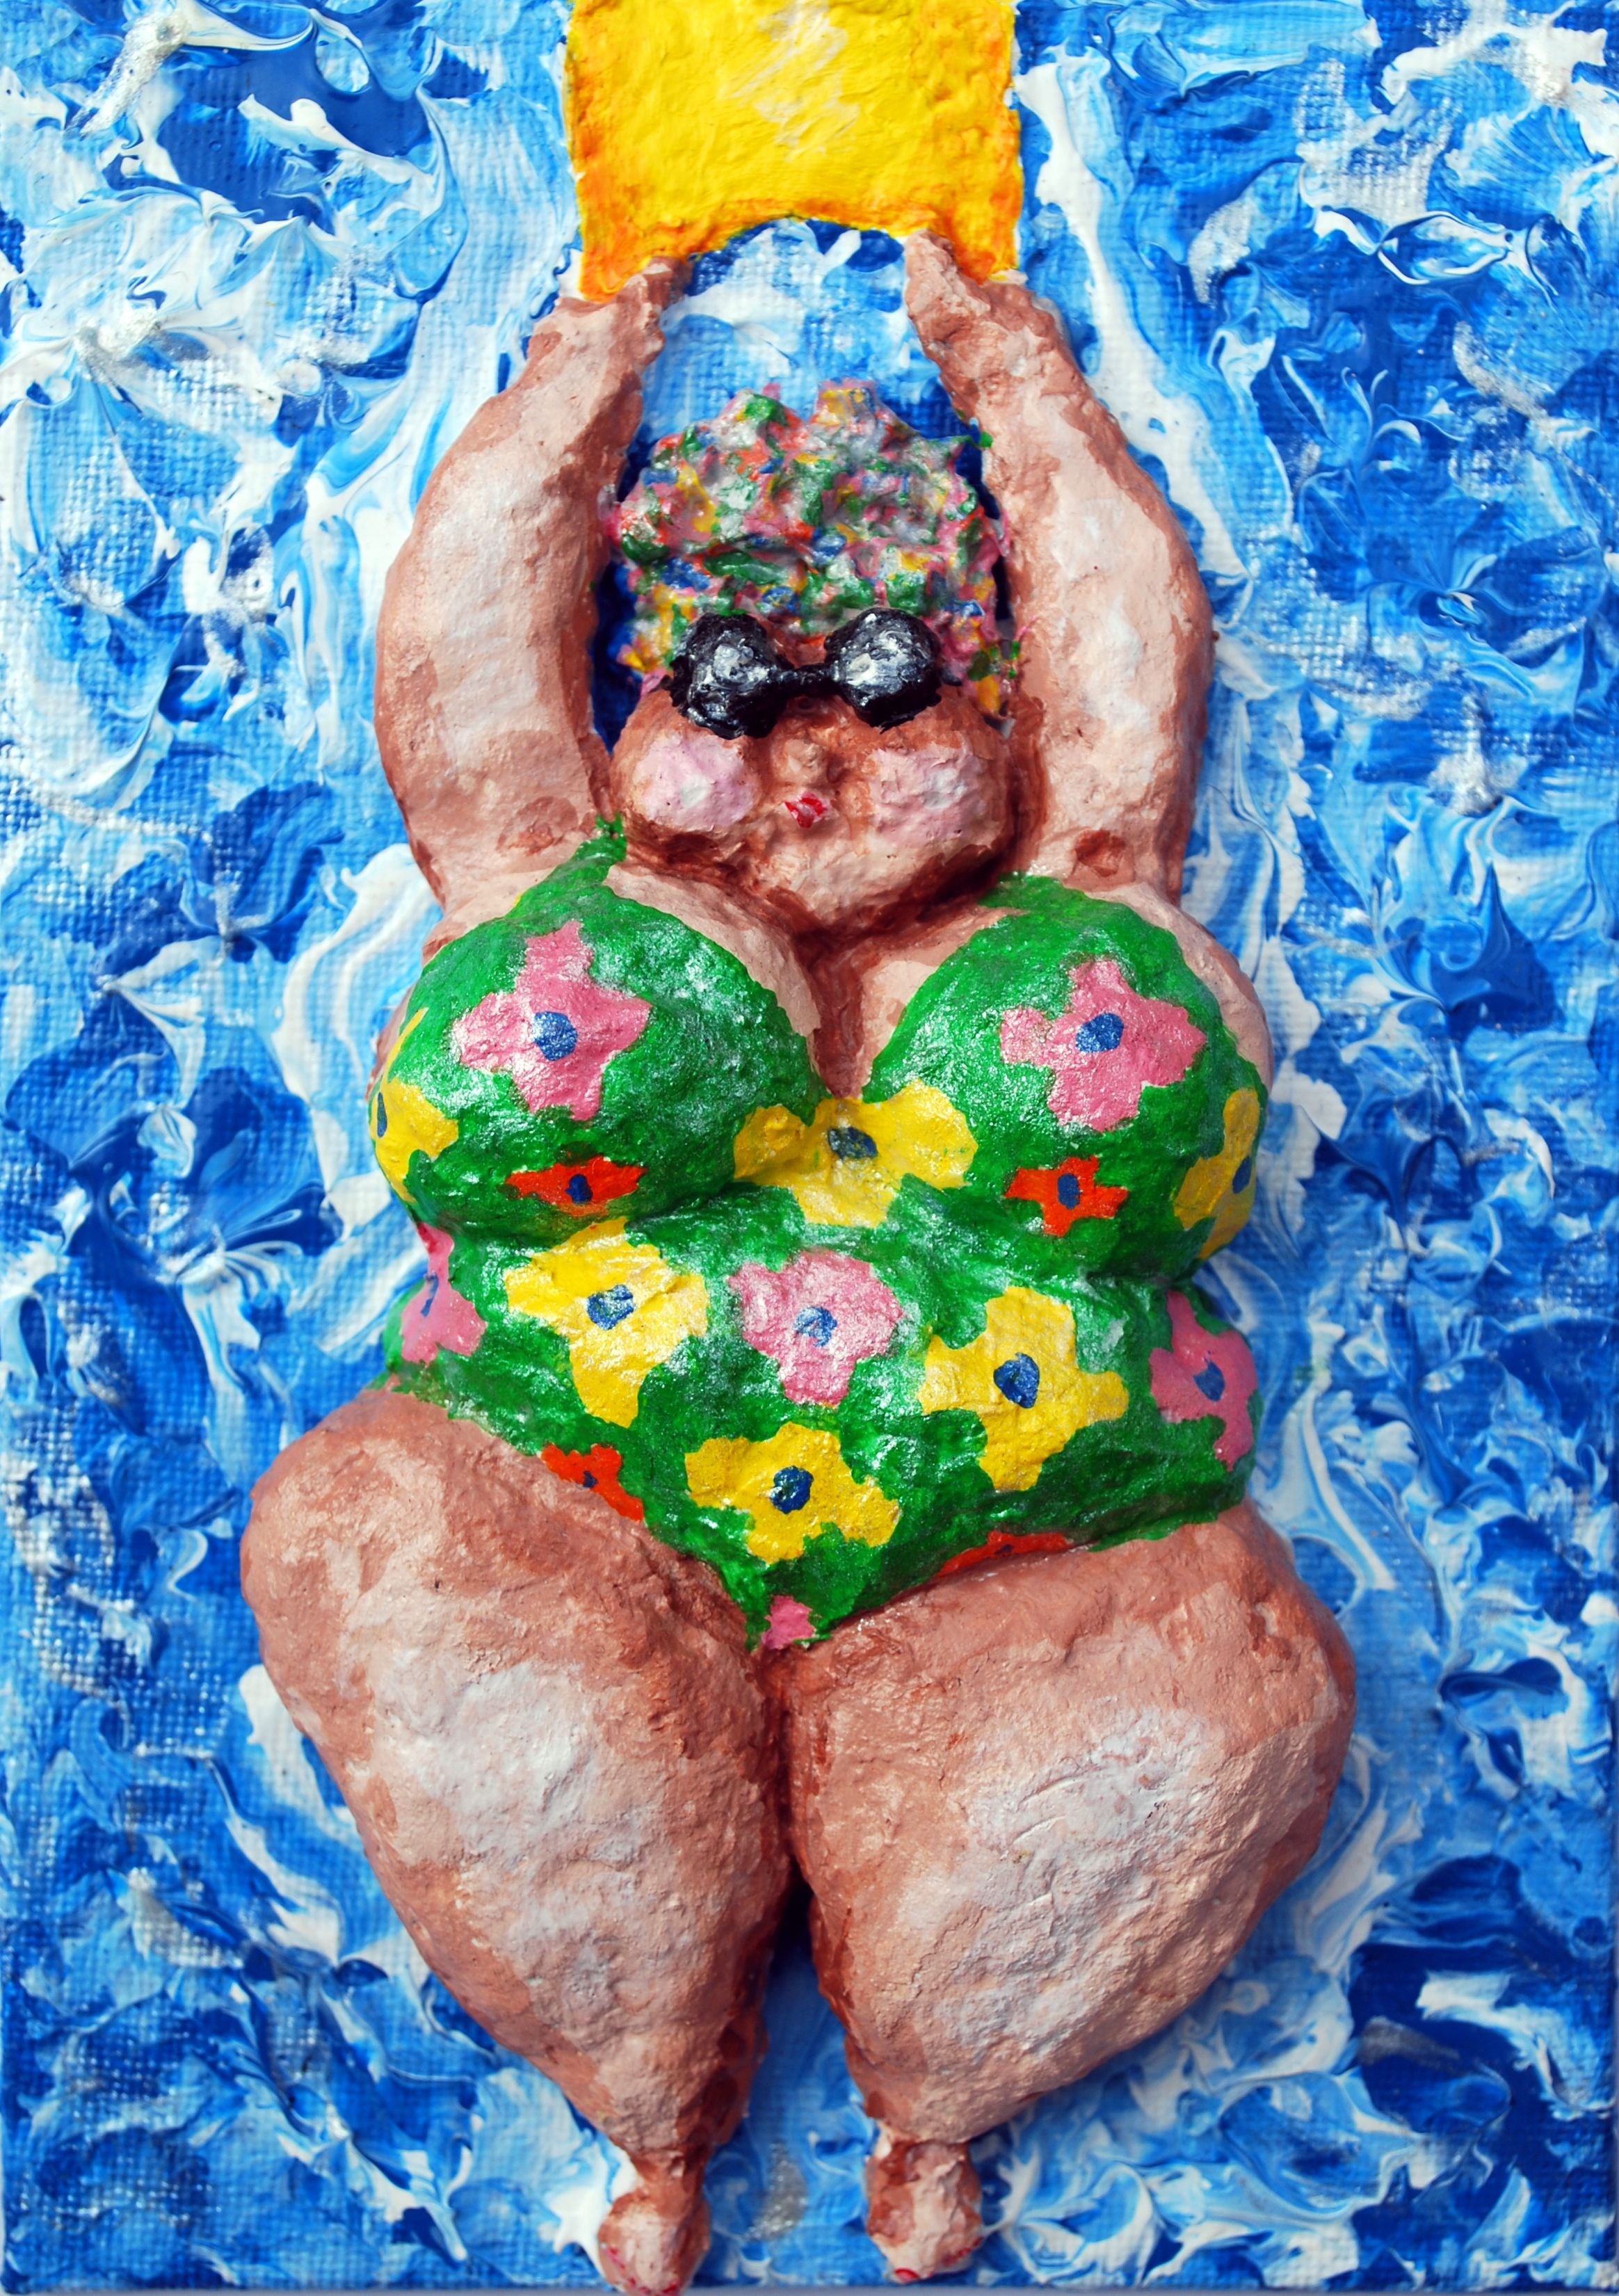 The other day at the local pool, an older lady was swimming lengths in the next lane. She had a great bathing cap covered with plastic flowers, yellow goggles and a wild floral bathing suit. As she swam, the flowers on her bathing cap whirled around her head and I had a hard time not laughing. I know she thought she looked quite beautiful as she sashayed by me, plastic flowers flapping with each step. All I could think was how eccentric people become as they get older. I hope I am so lucky!